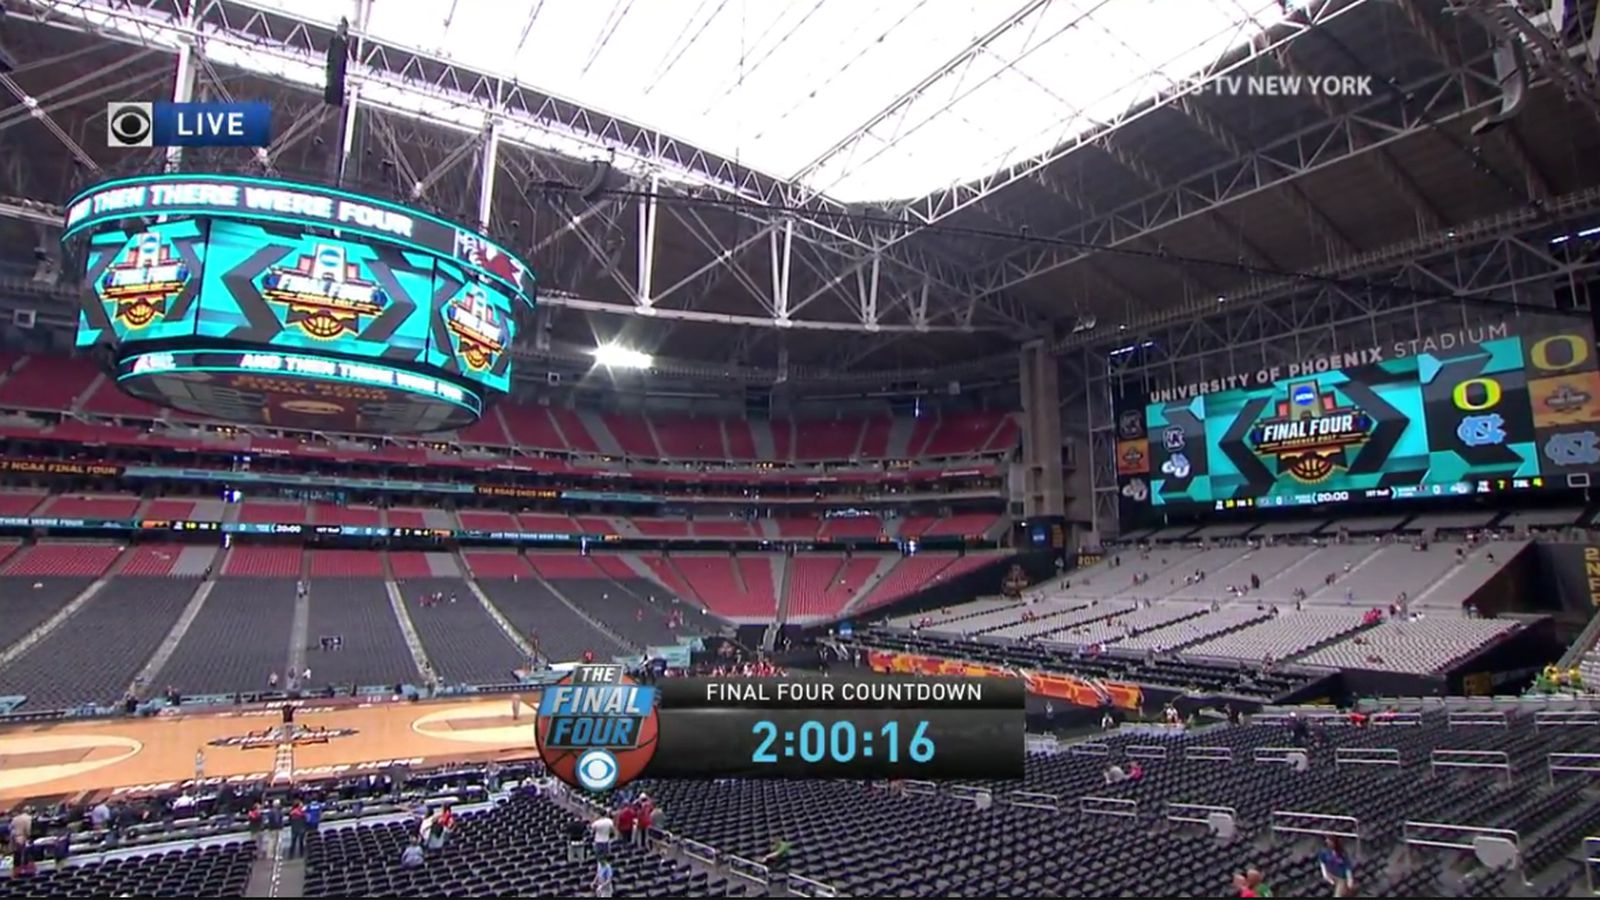 2017 Final Four Court Will Have Lots Of Sunlight Shining